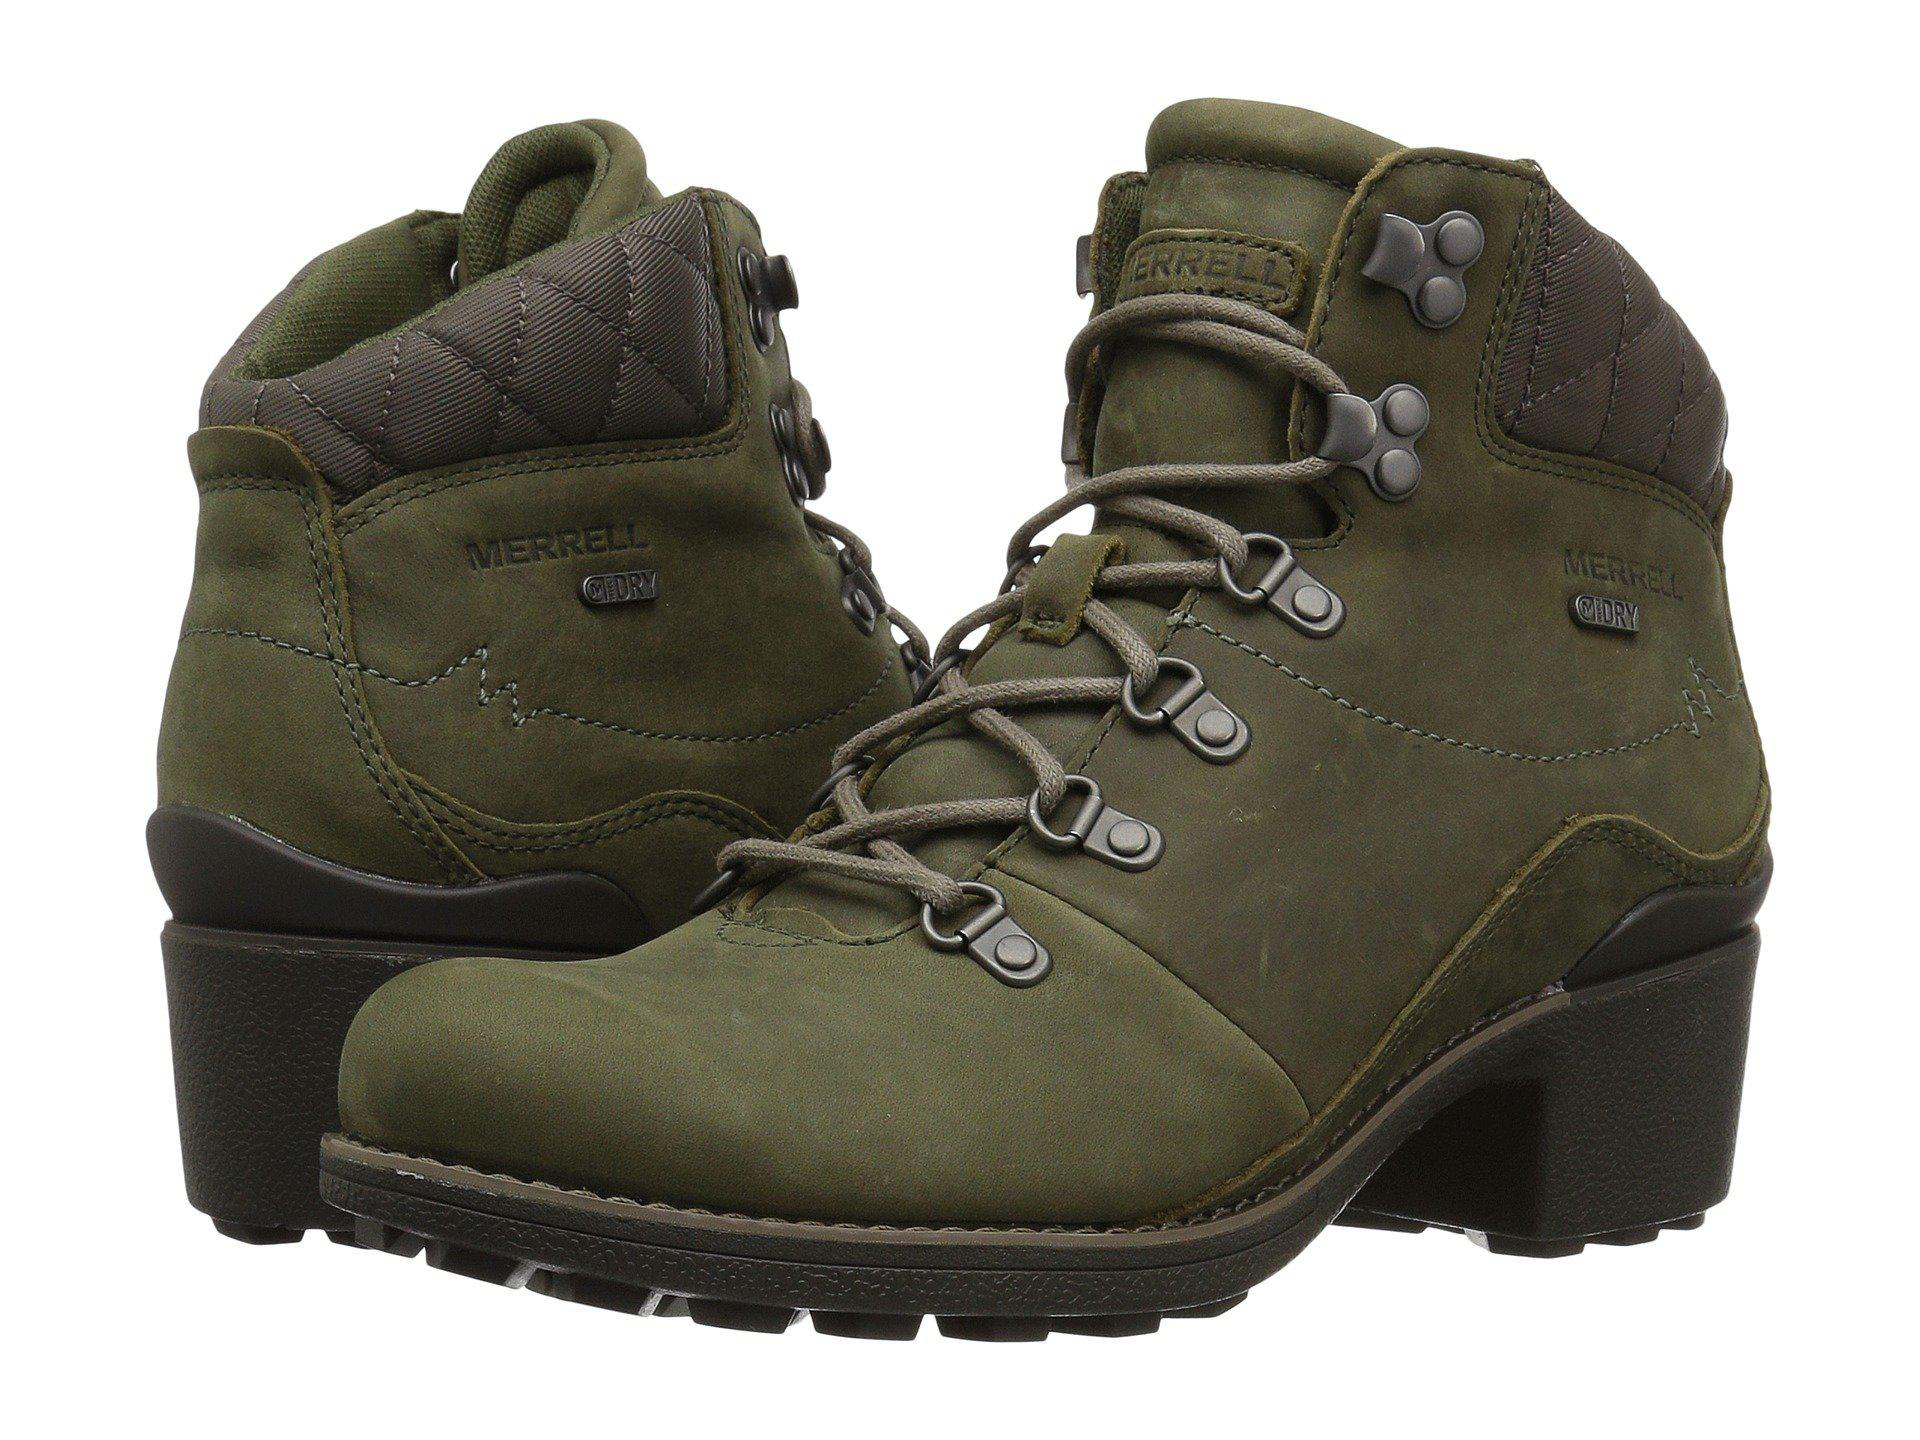 7b420556c51 Lyst - Merrell Chateau Mid Lace Waterproof in Green - Save 27%